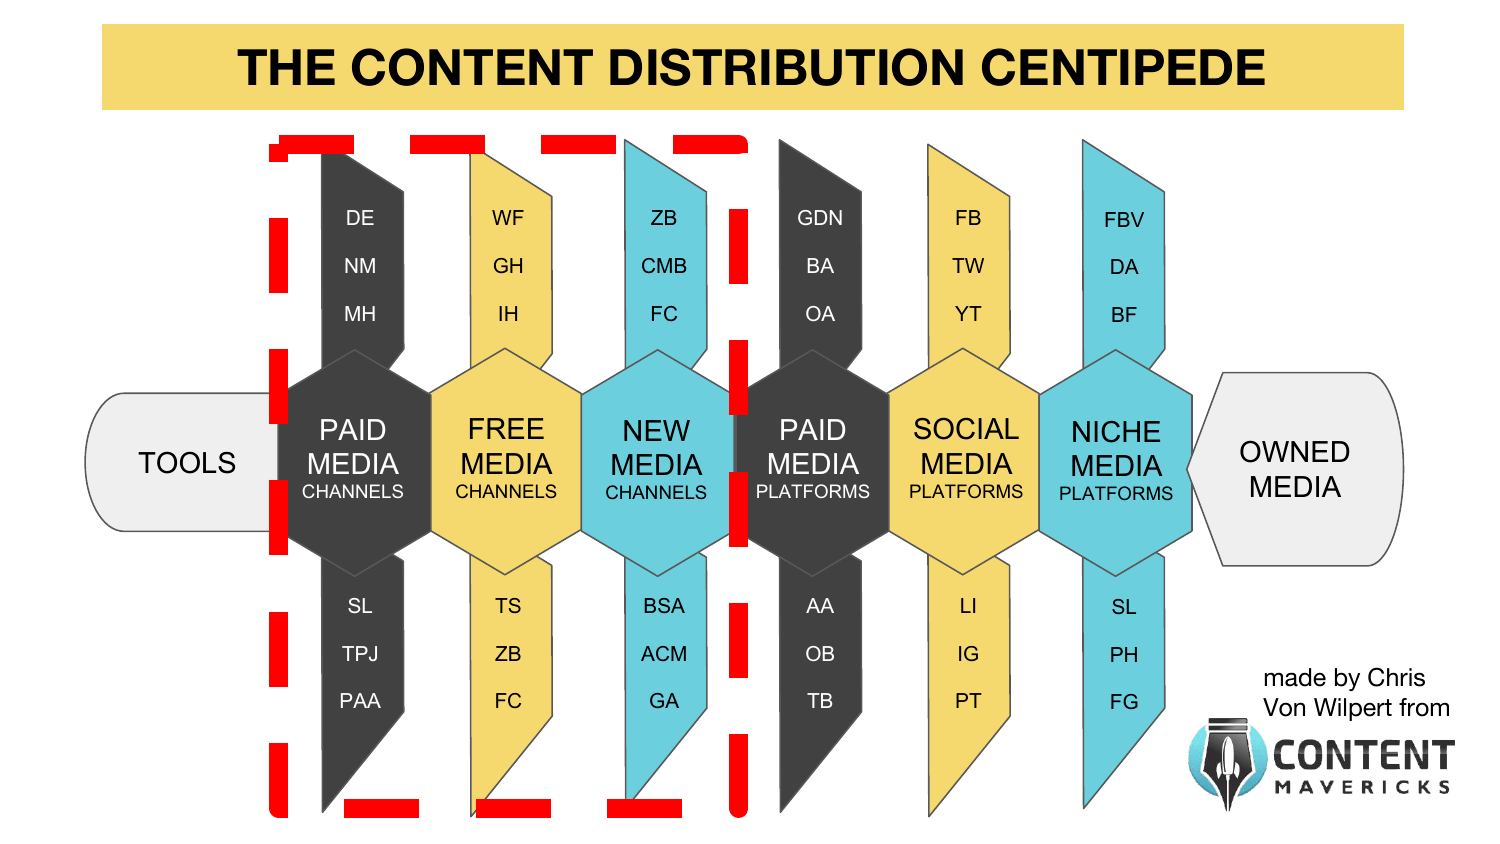 content distribution centipede channels image